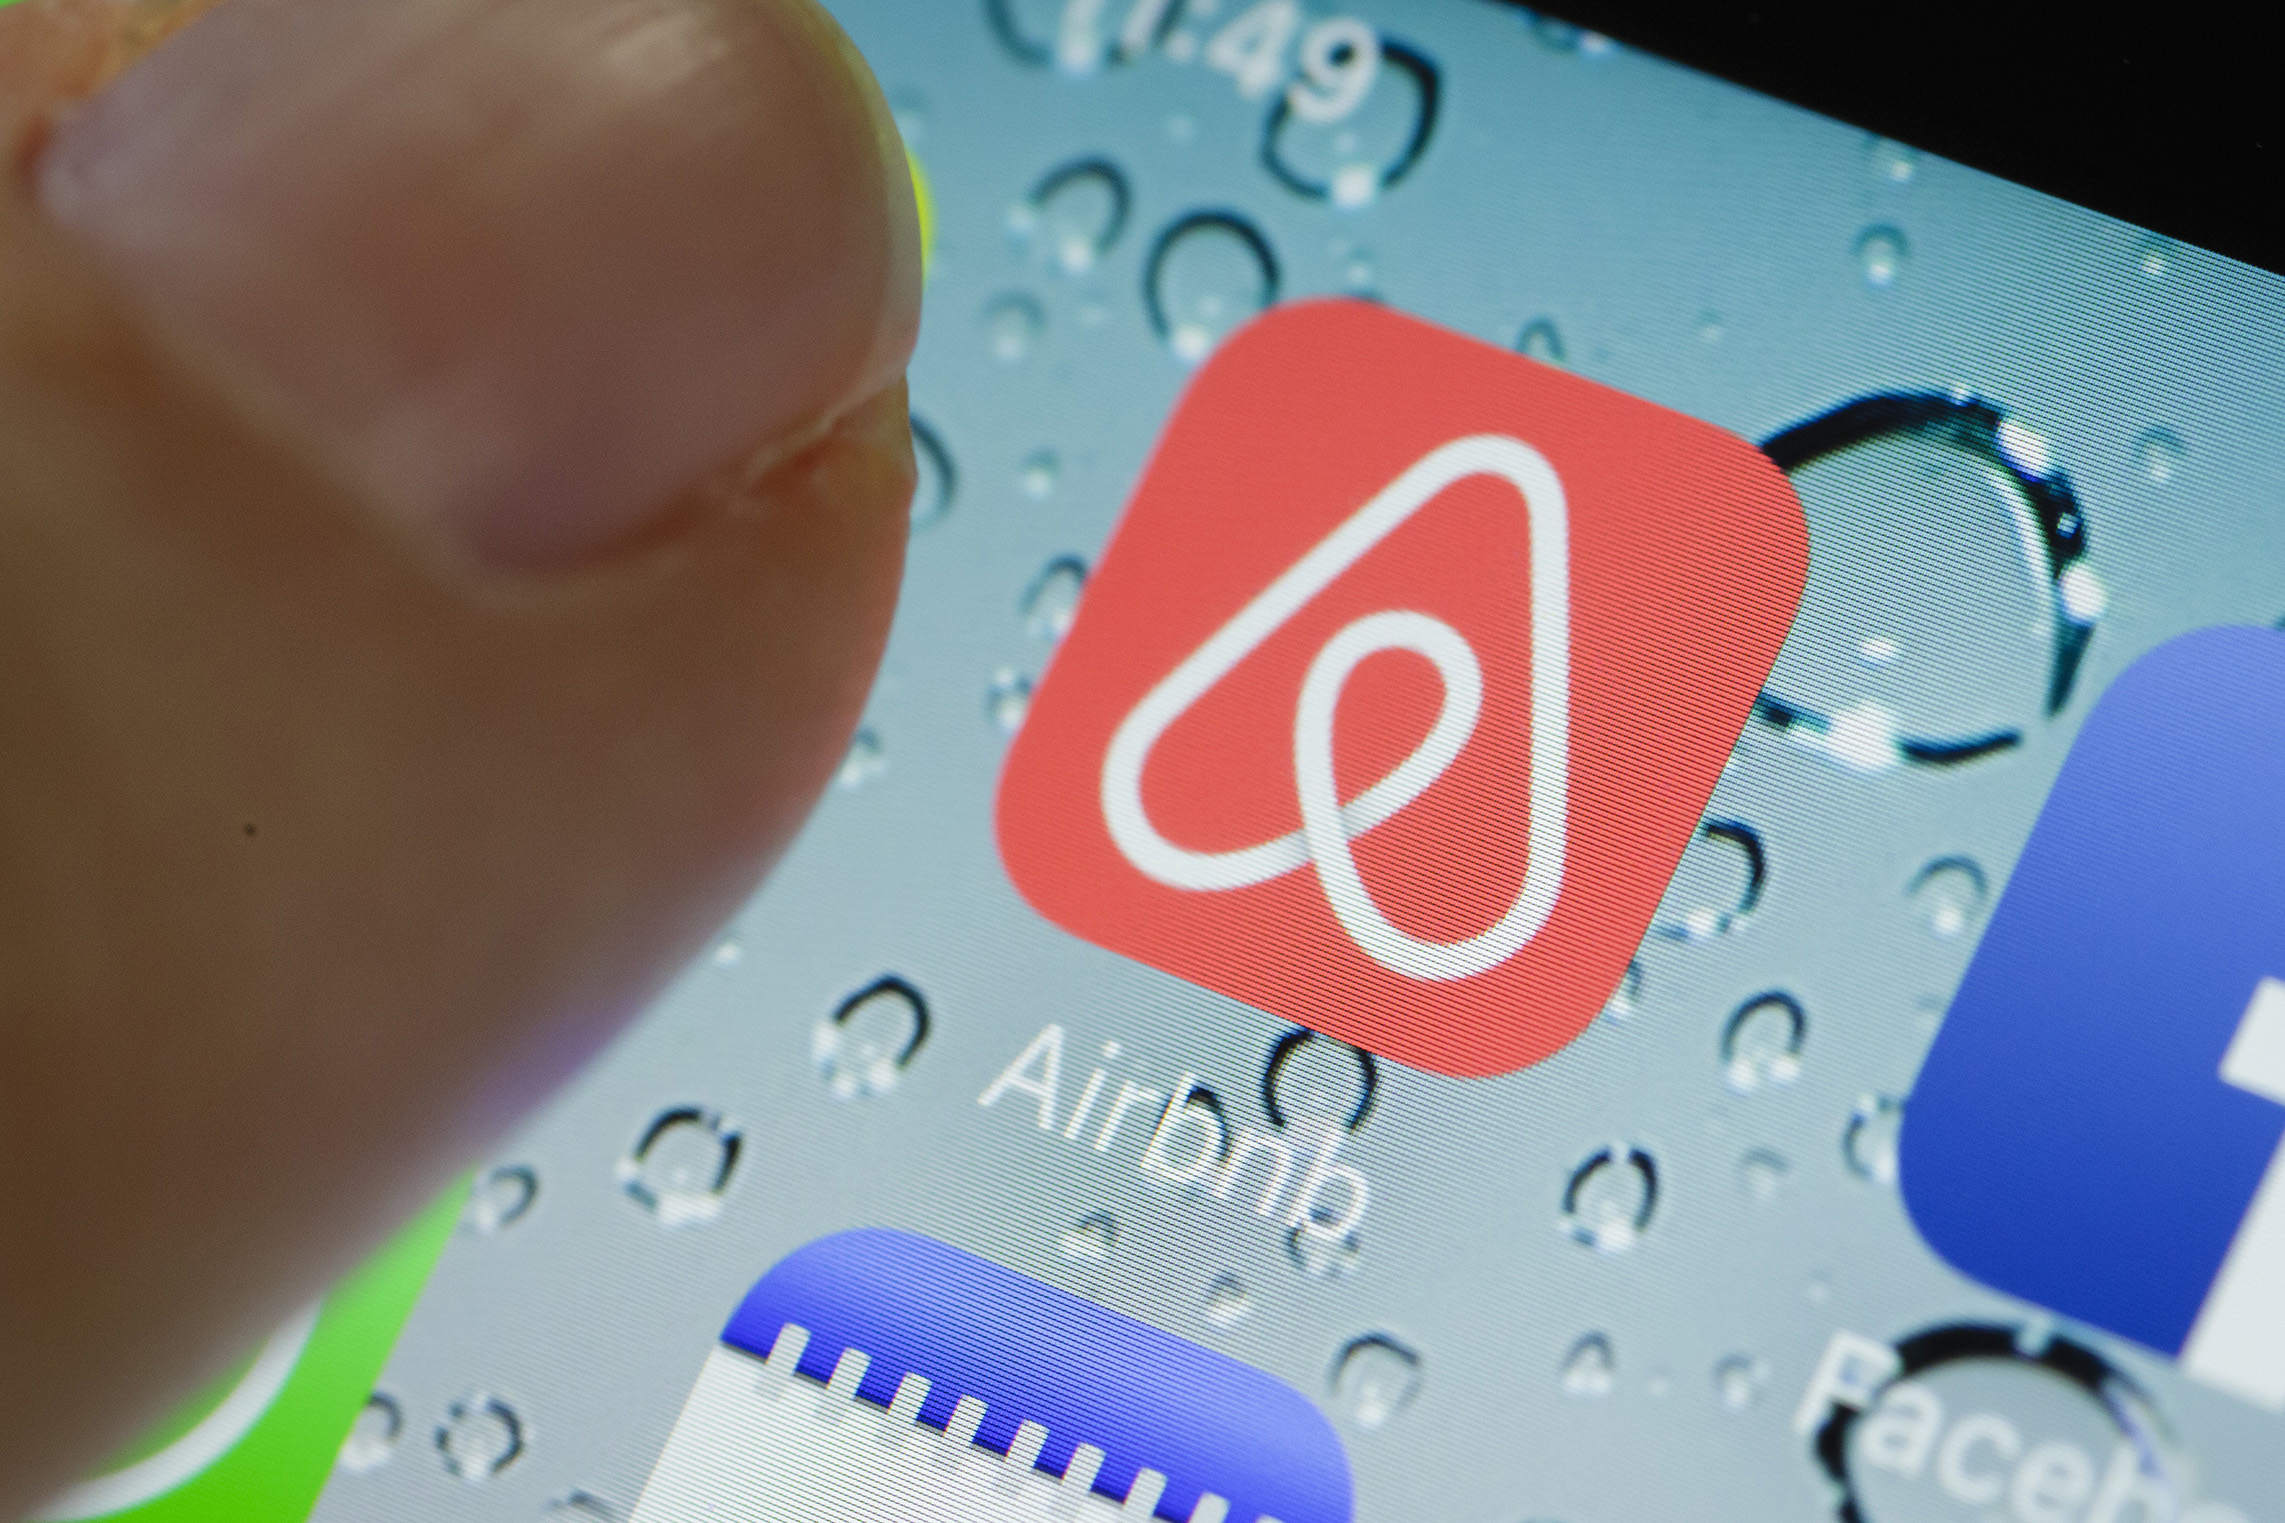 Paris sues Airbnb for illegal listings and seeks $14 2 million